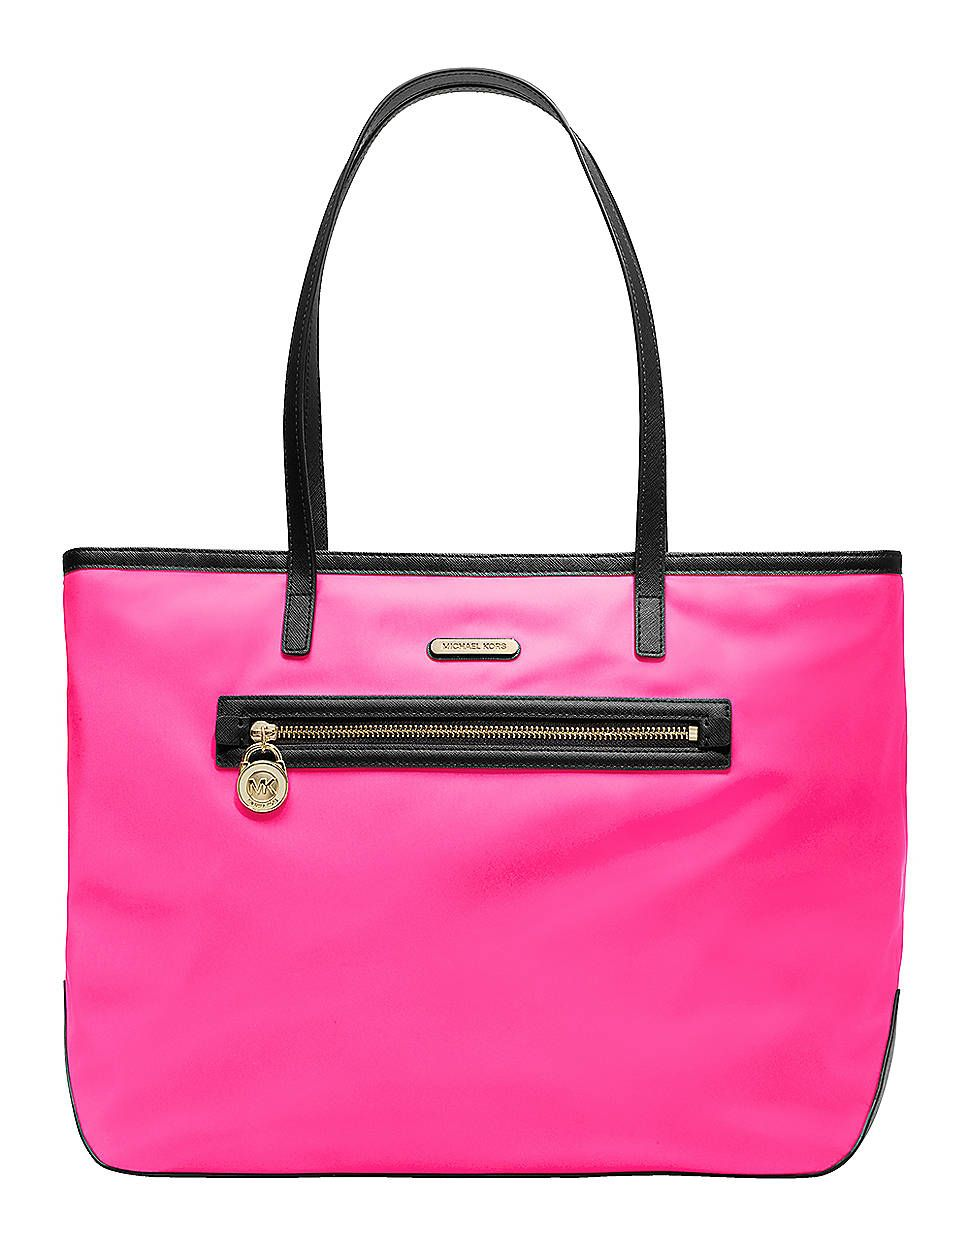 523d3837852c OBSESSED: Michael Kors Kempton Large Nylon East West Tote Bag | Lord and  Taylor